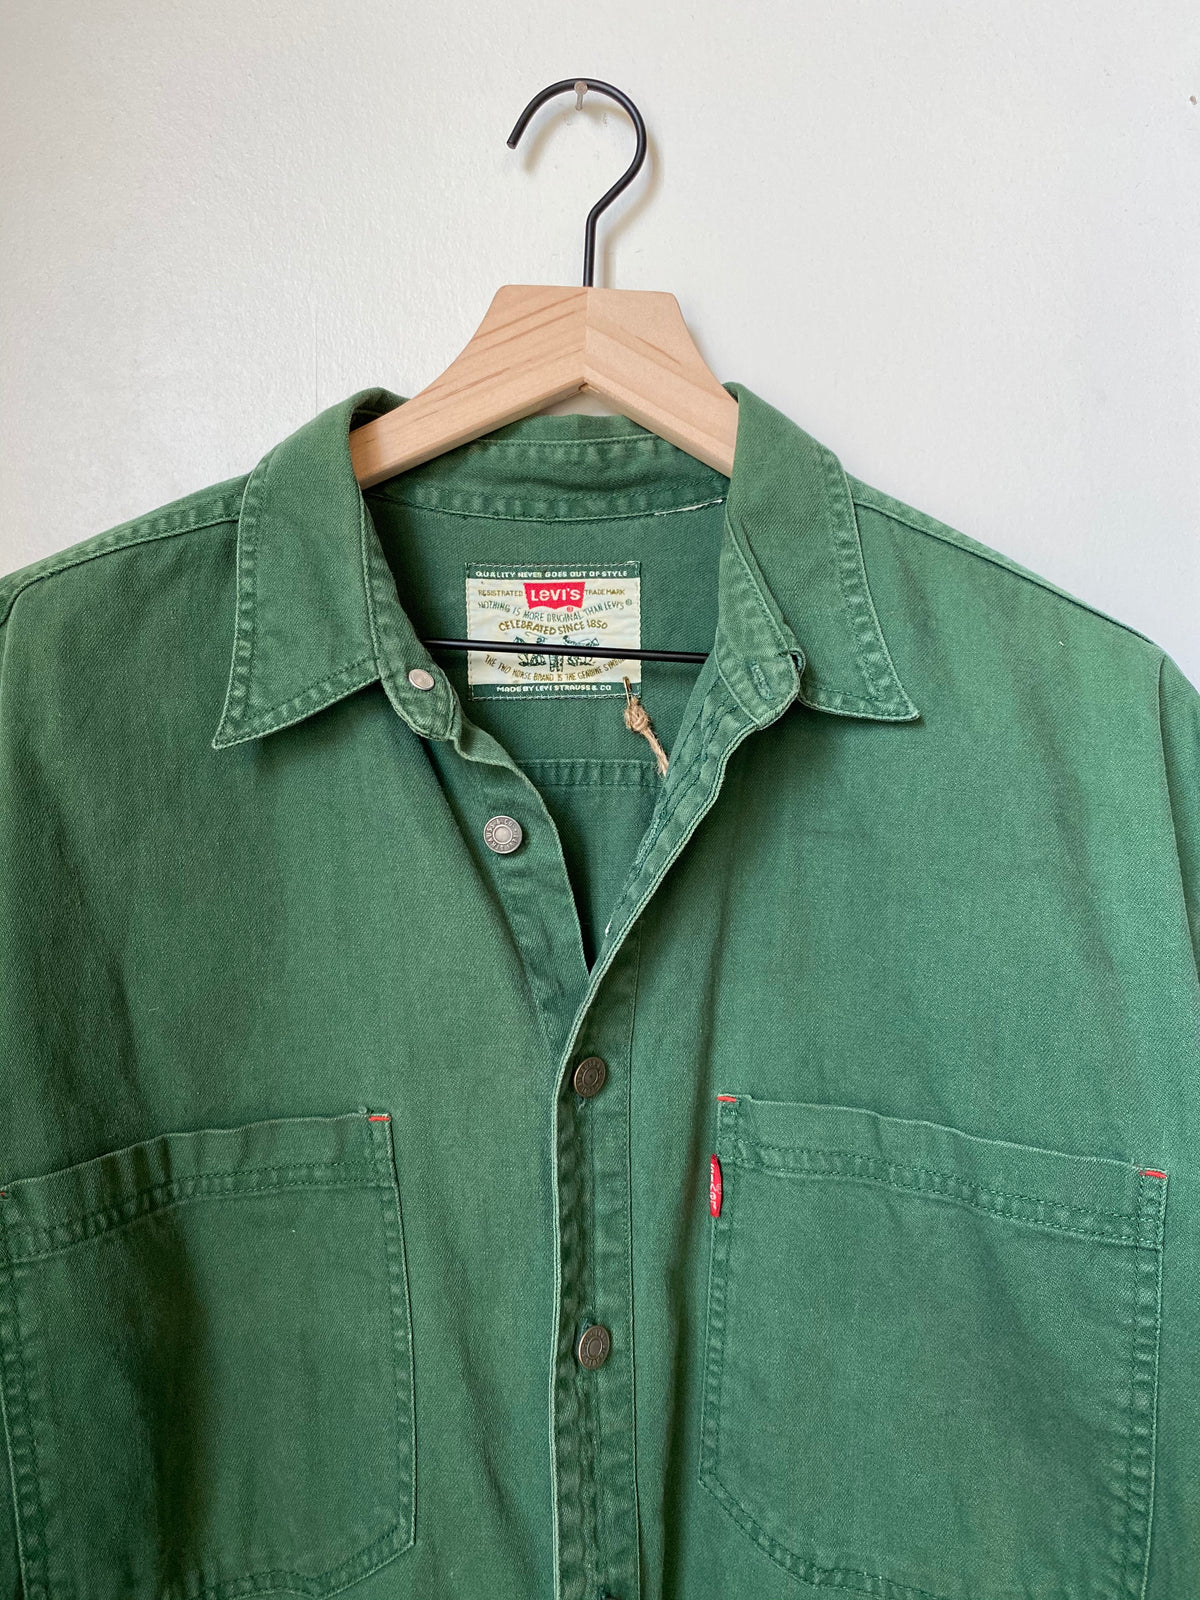 1990's Levi's Red Tab Shirt